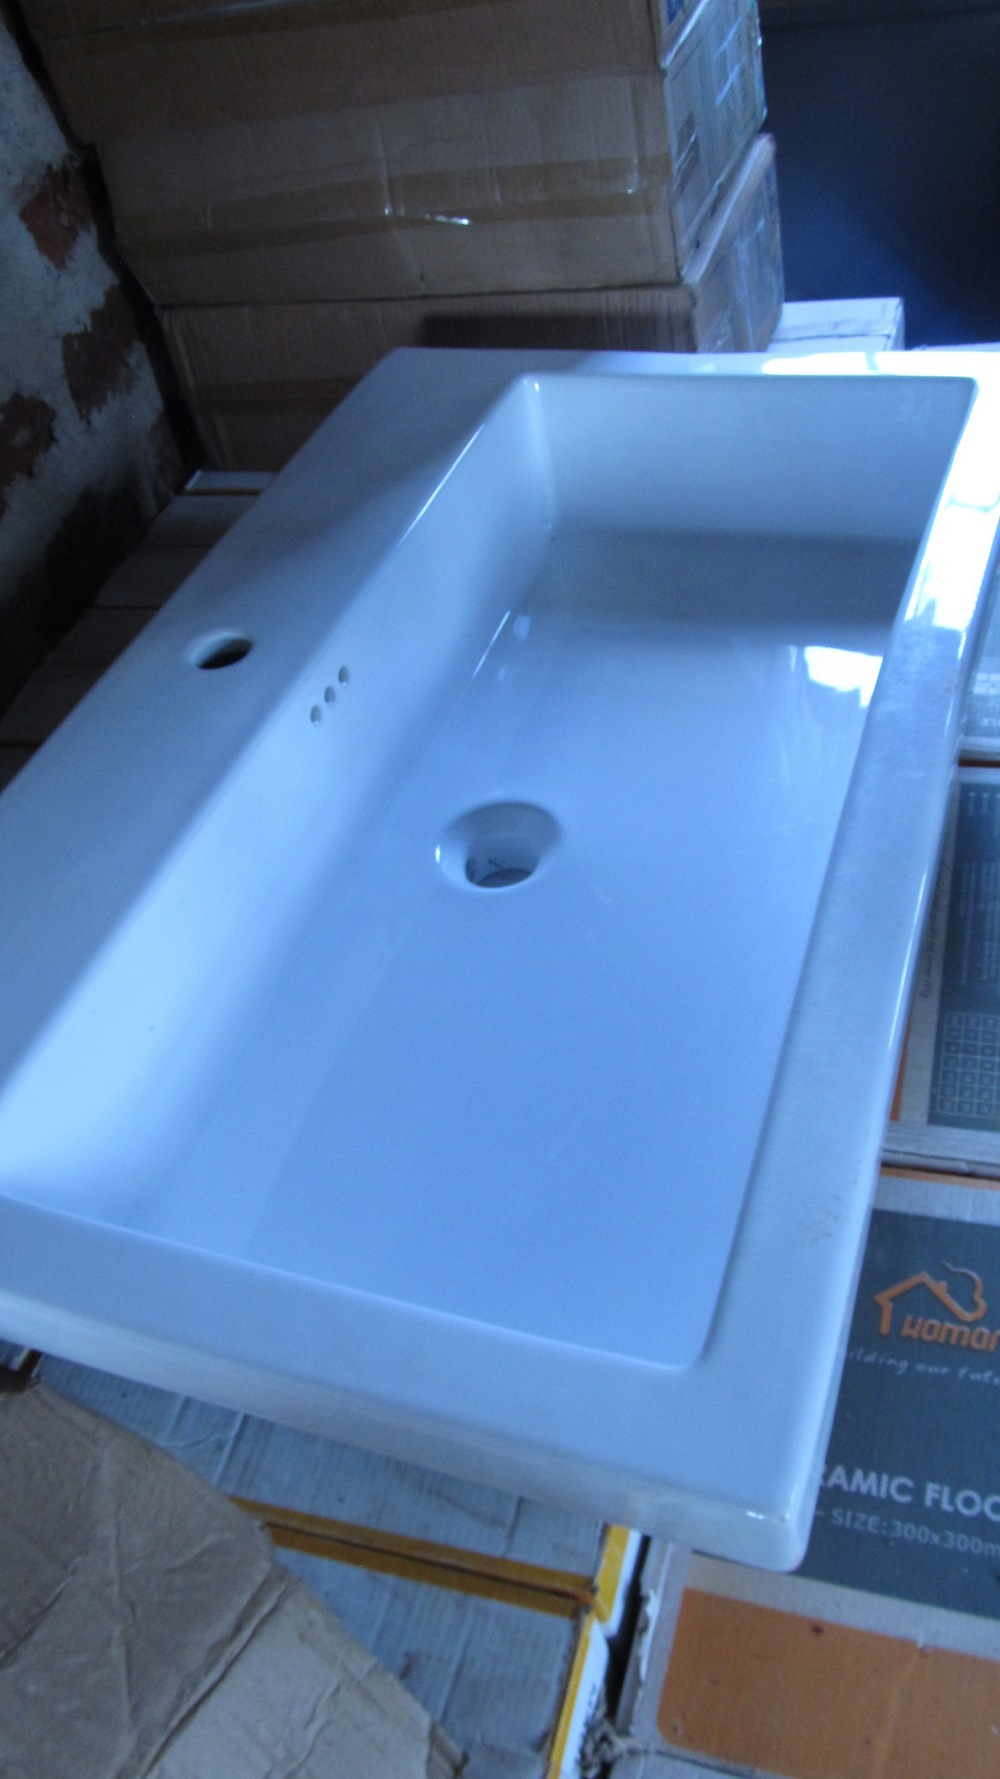 One of the sinks your donations bought!